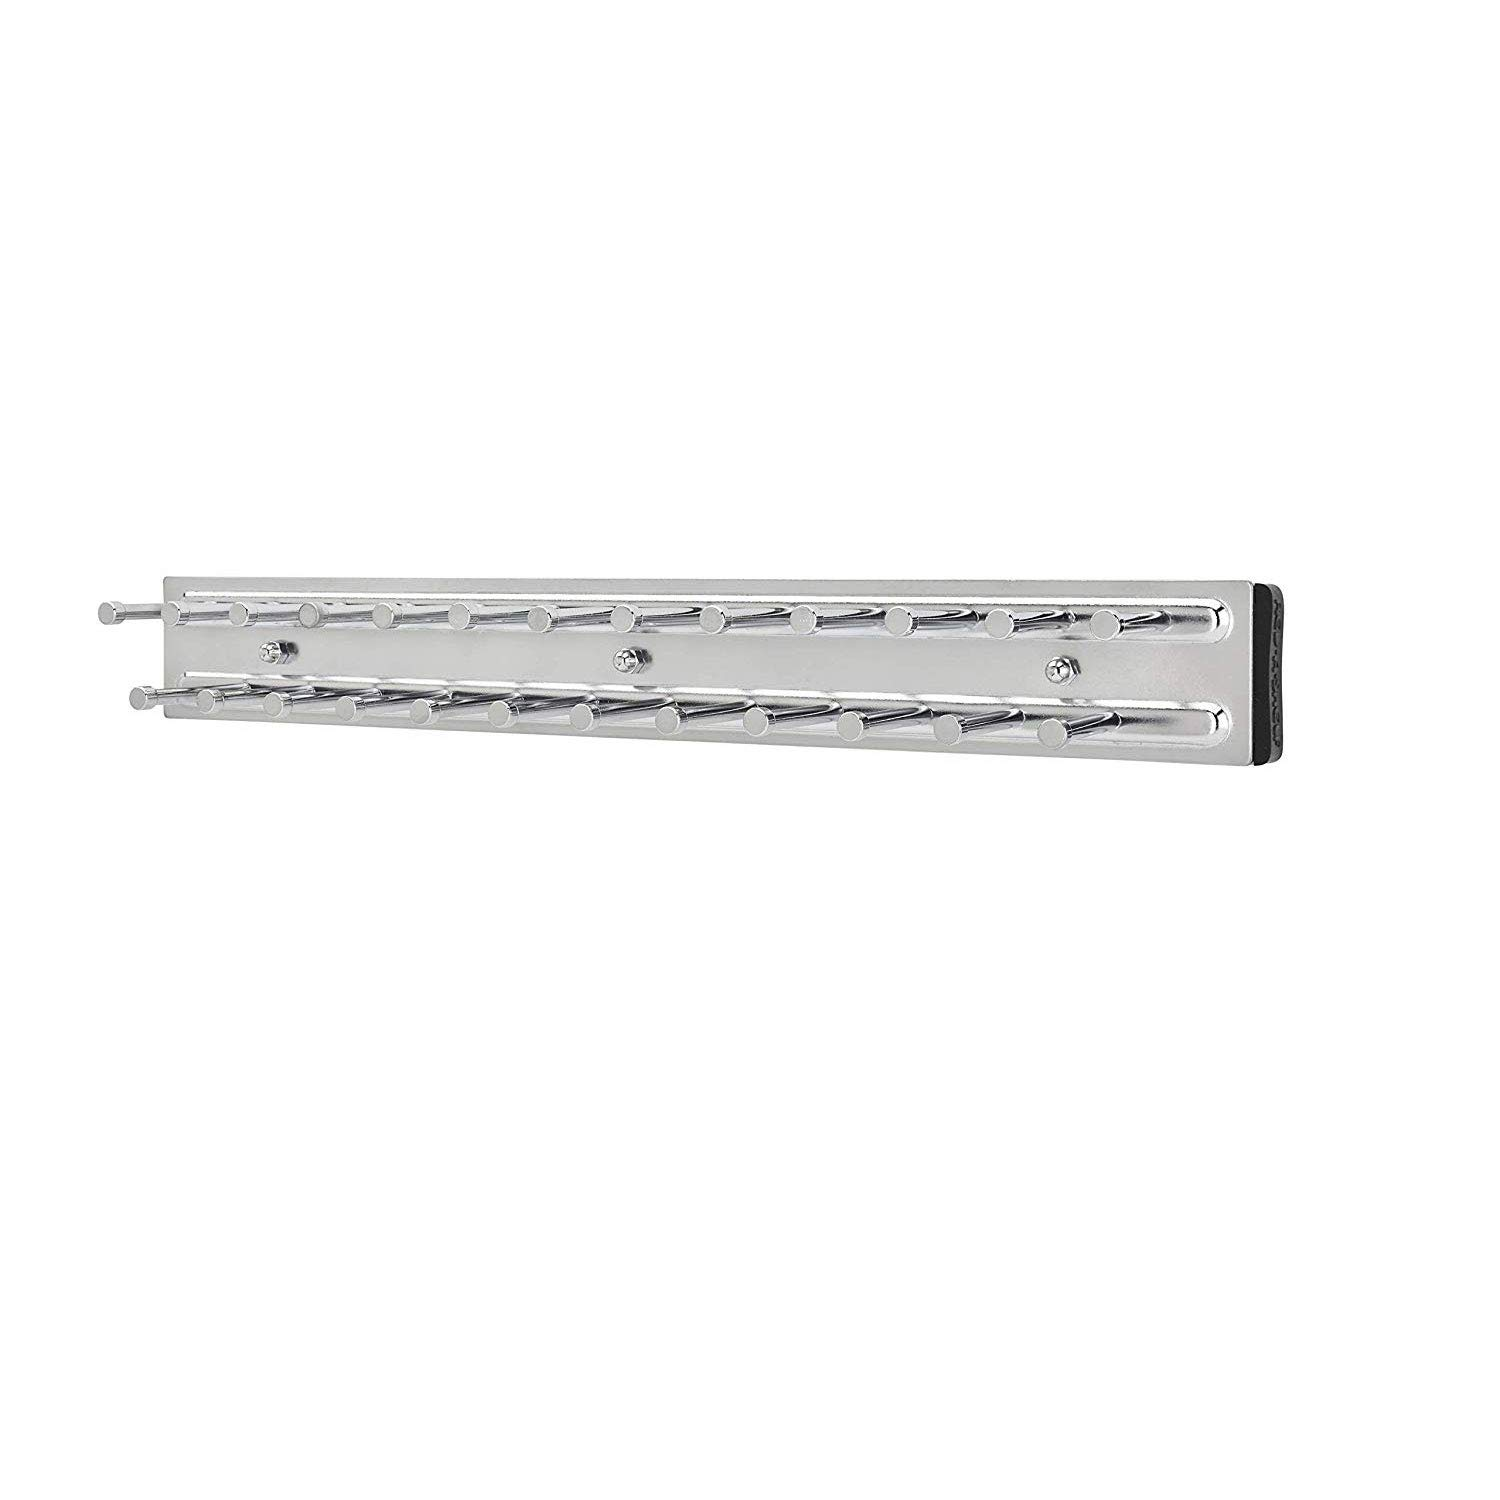 Rev-A-Shelf TRC-14CR 14 Inch Side Mount Extending Tie Organization Rack, Chrome by Rev-A-Shelf